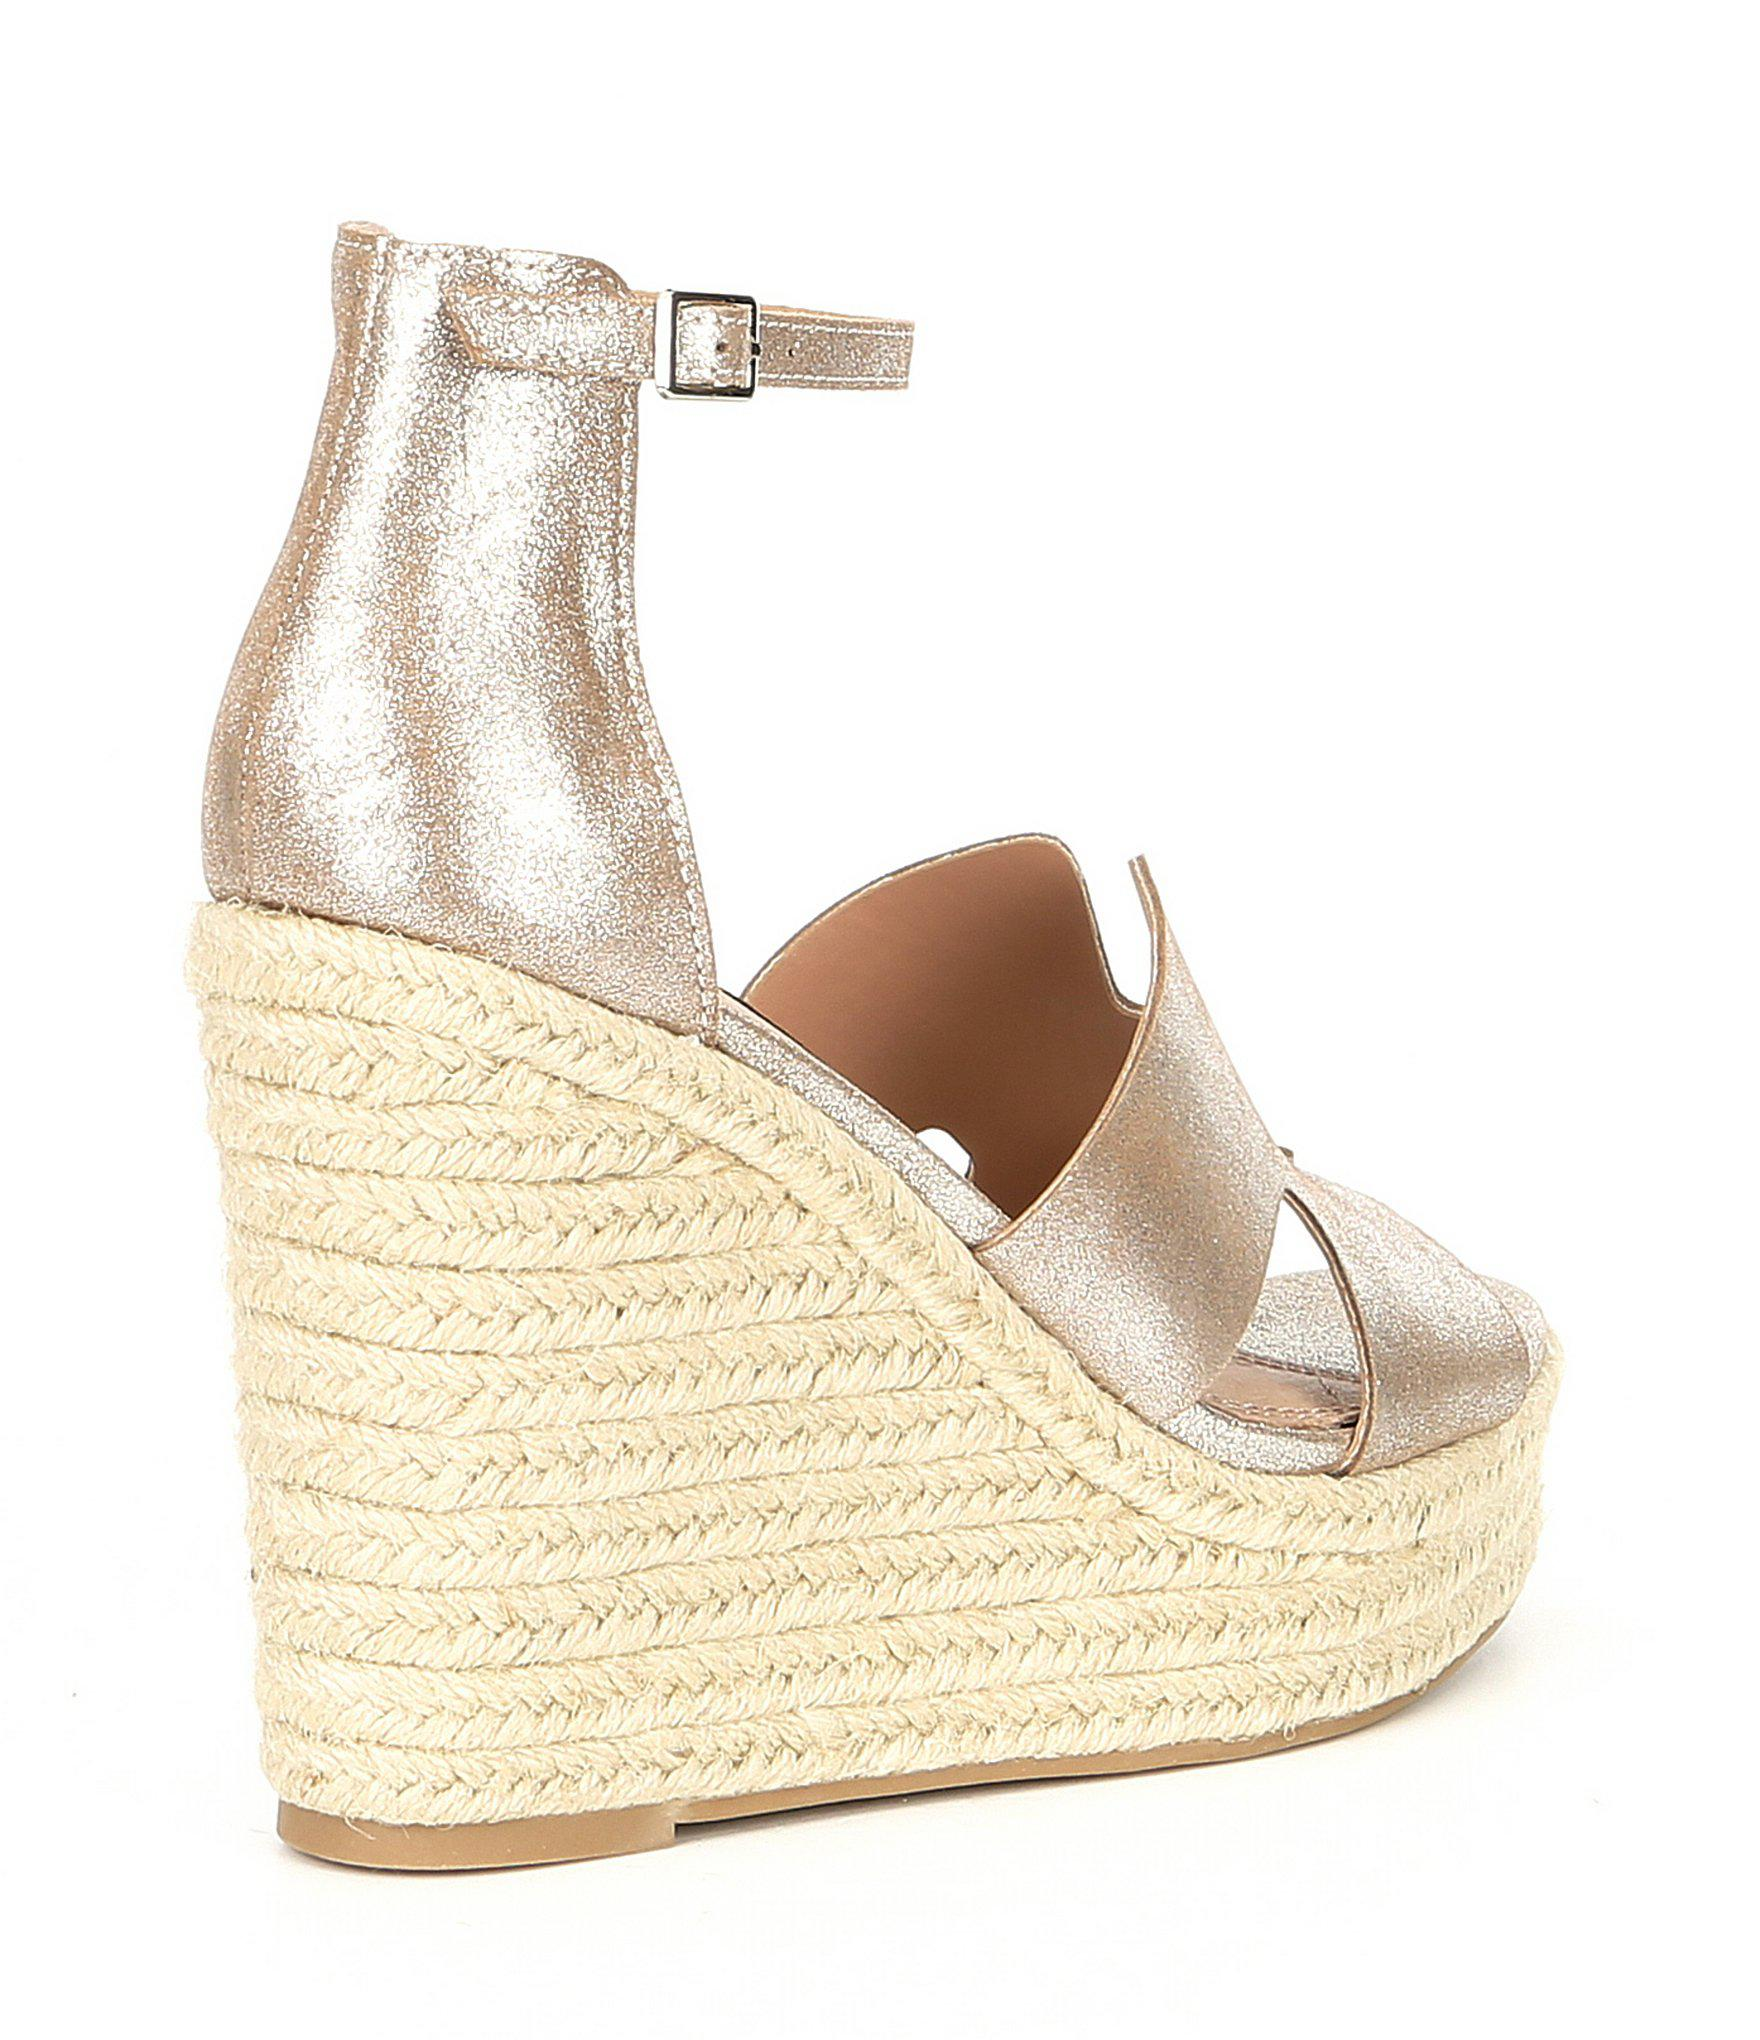 a5cf4039dac Steve Madden - Metallic Steven By Sirena Leather Espadrille Wedge Sandals -  Lyst. View fullscreen